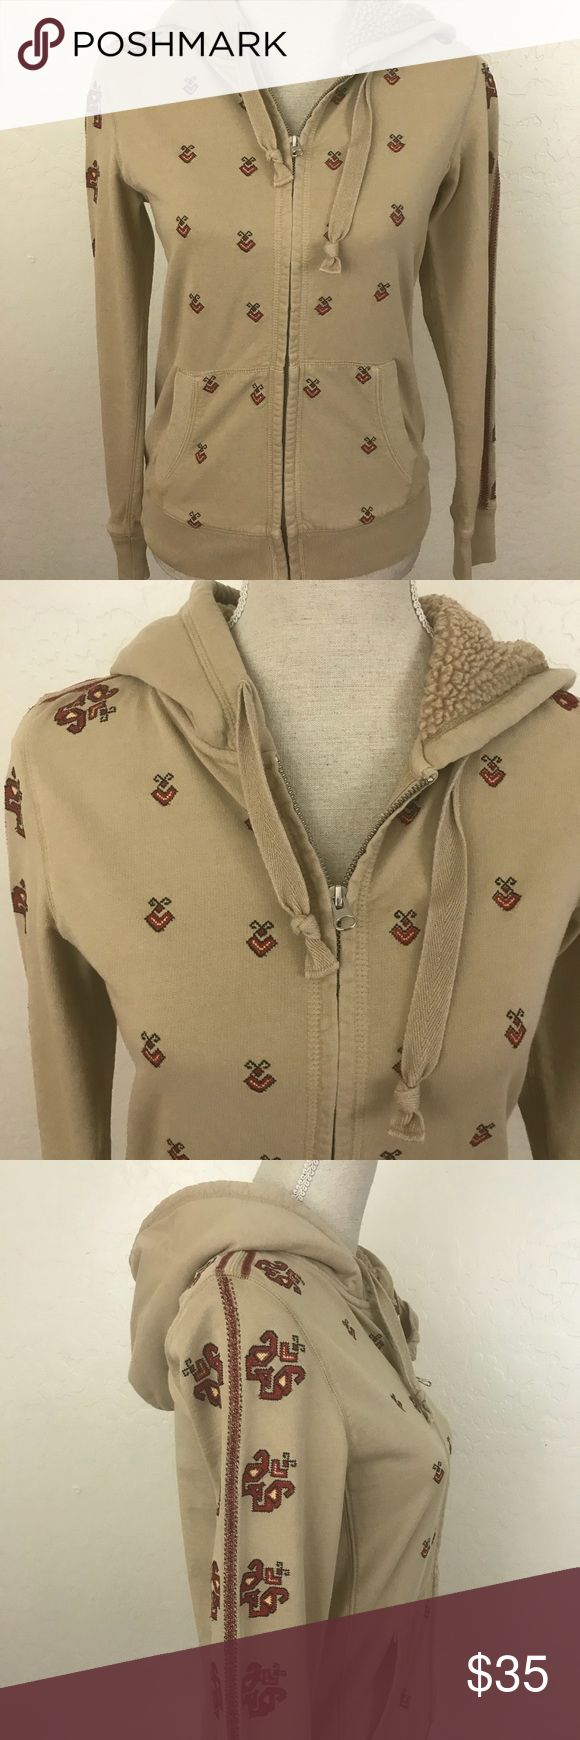 "Lucky Brand Nude Embroidered zip Up Hoodie Sz S Preowned Embroidered zip up hoodie in good condition  Armpit to armpit 17"" Length 24"" Only the hoodie is lined with the furry material Lucky Brand Jackets & Coats"